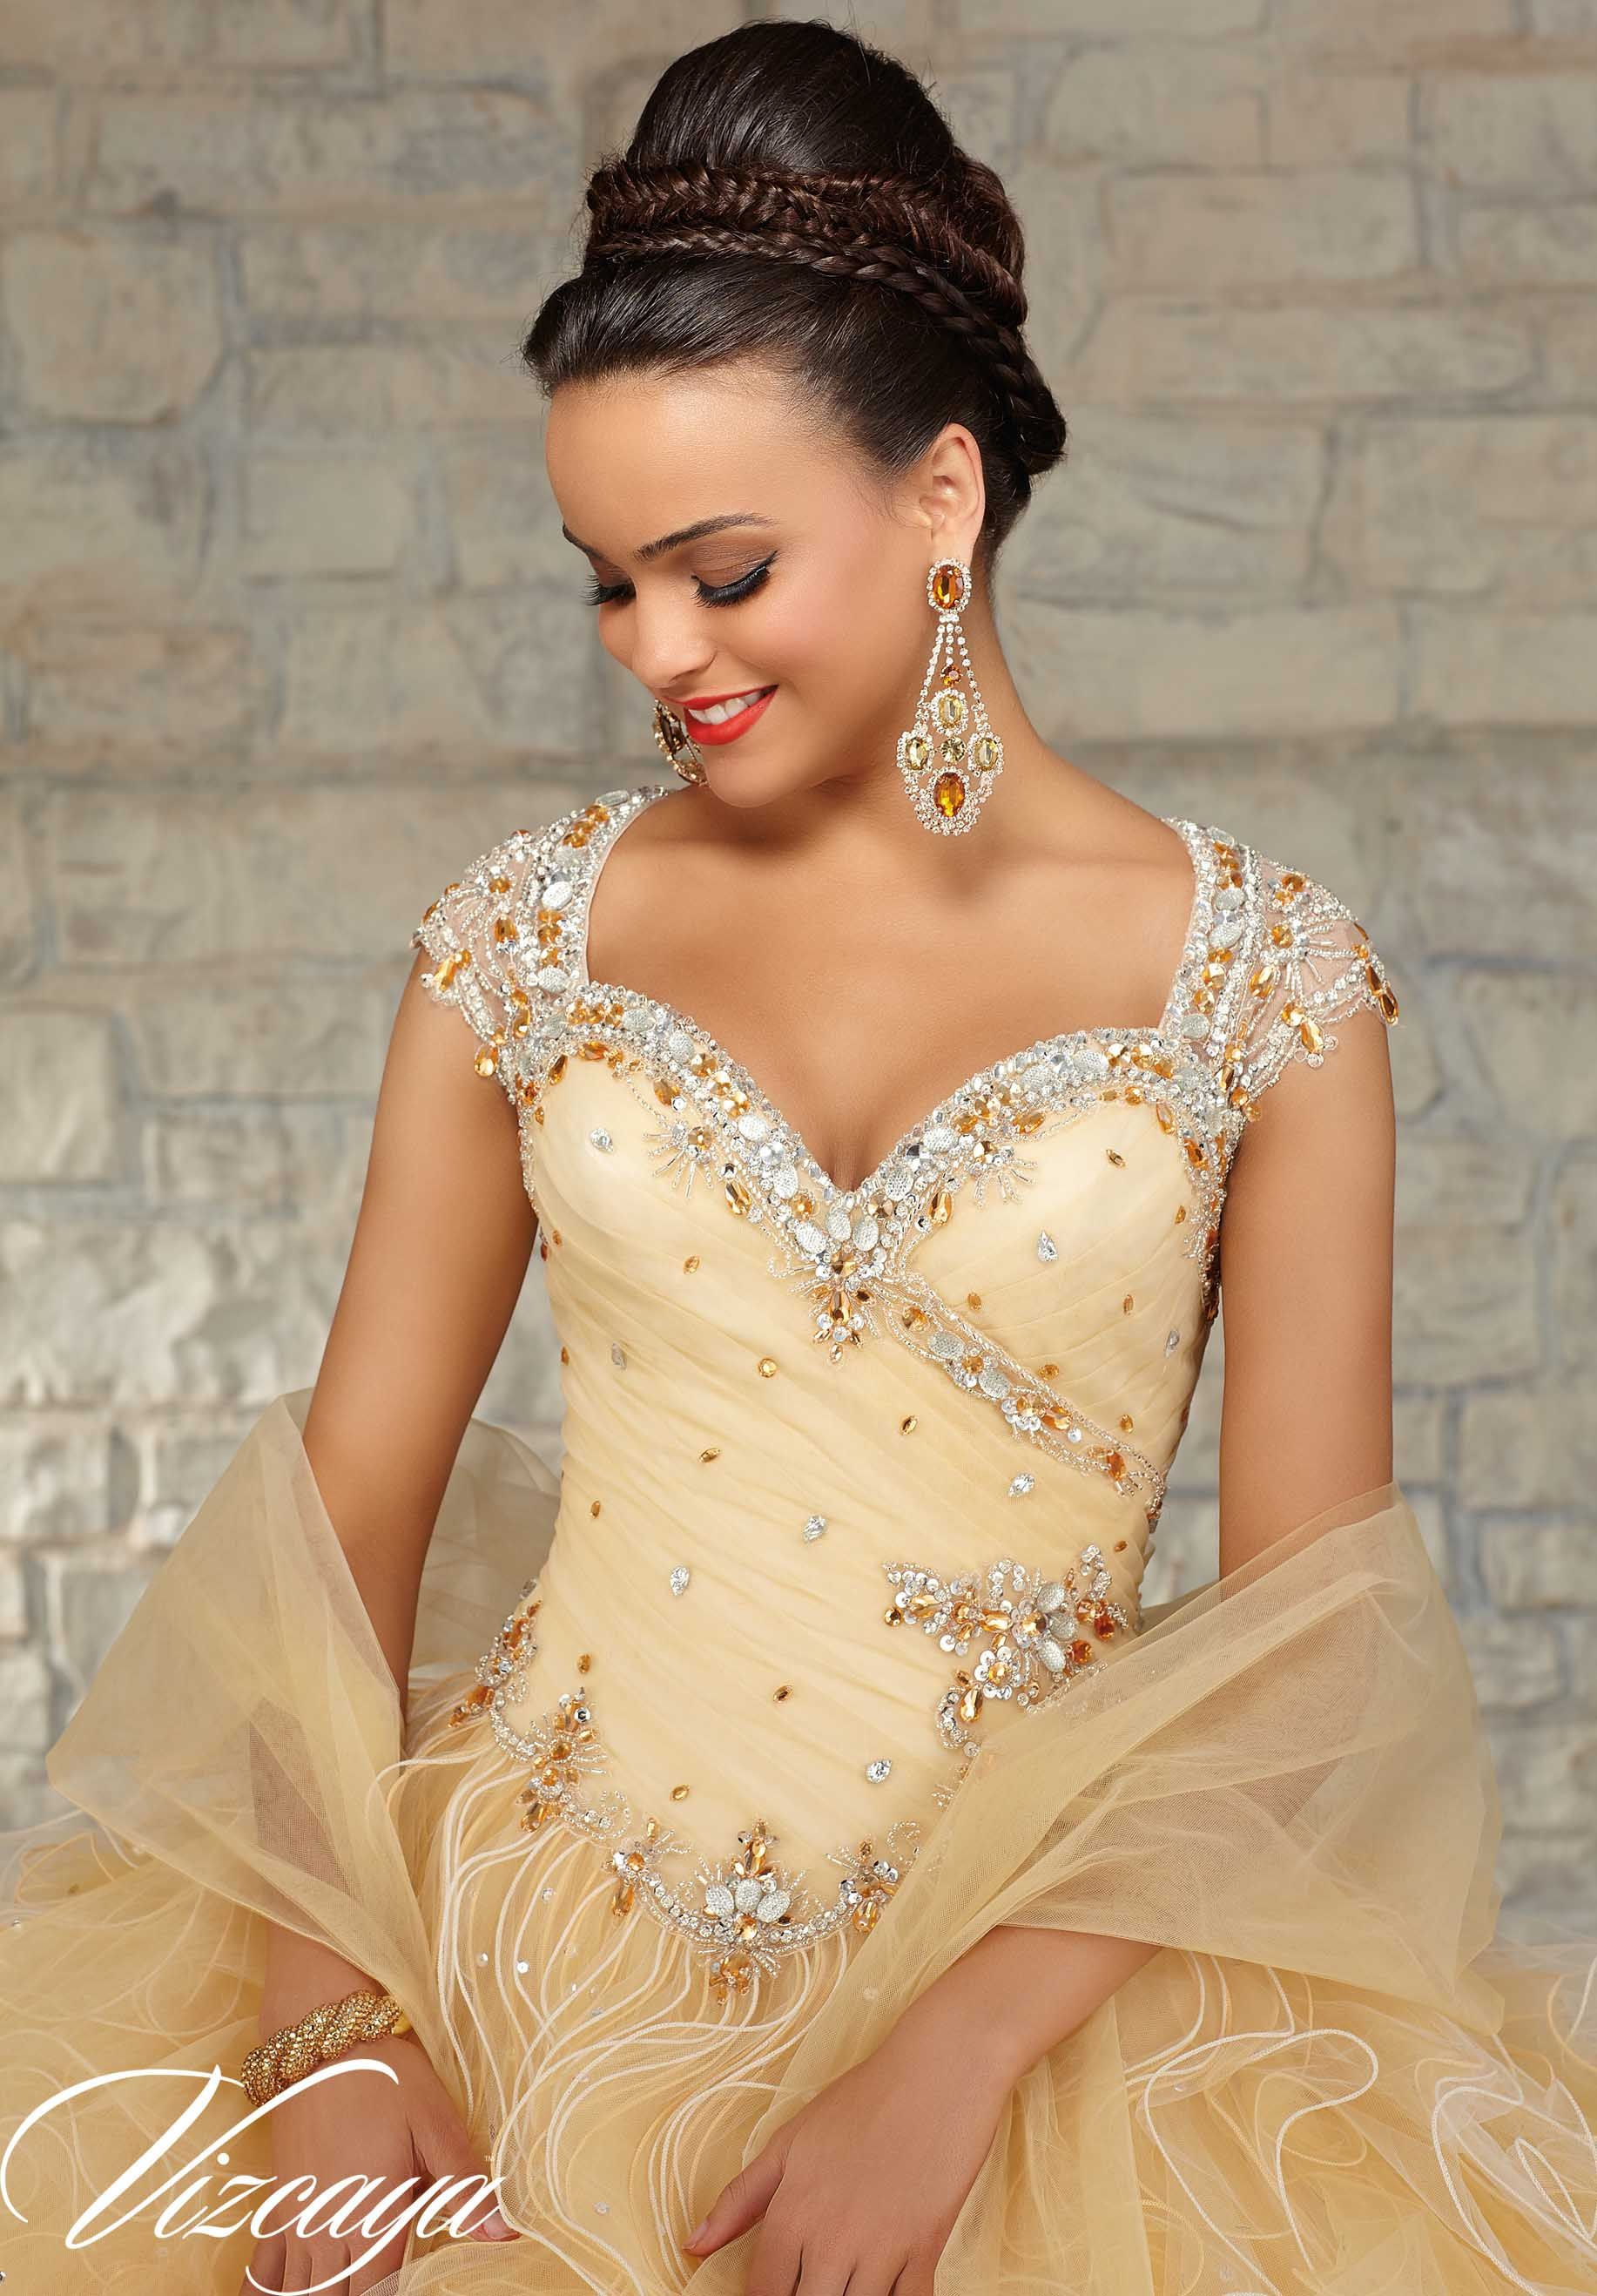 b52633c38a0 89033 Quinceanera Gowns Beaded Tulle with a Ruffled Ball Gown Skirt. Cream